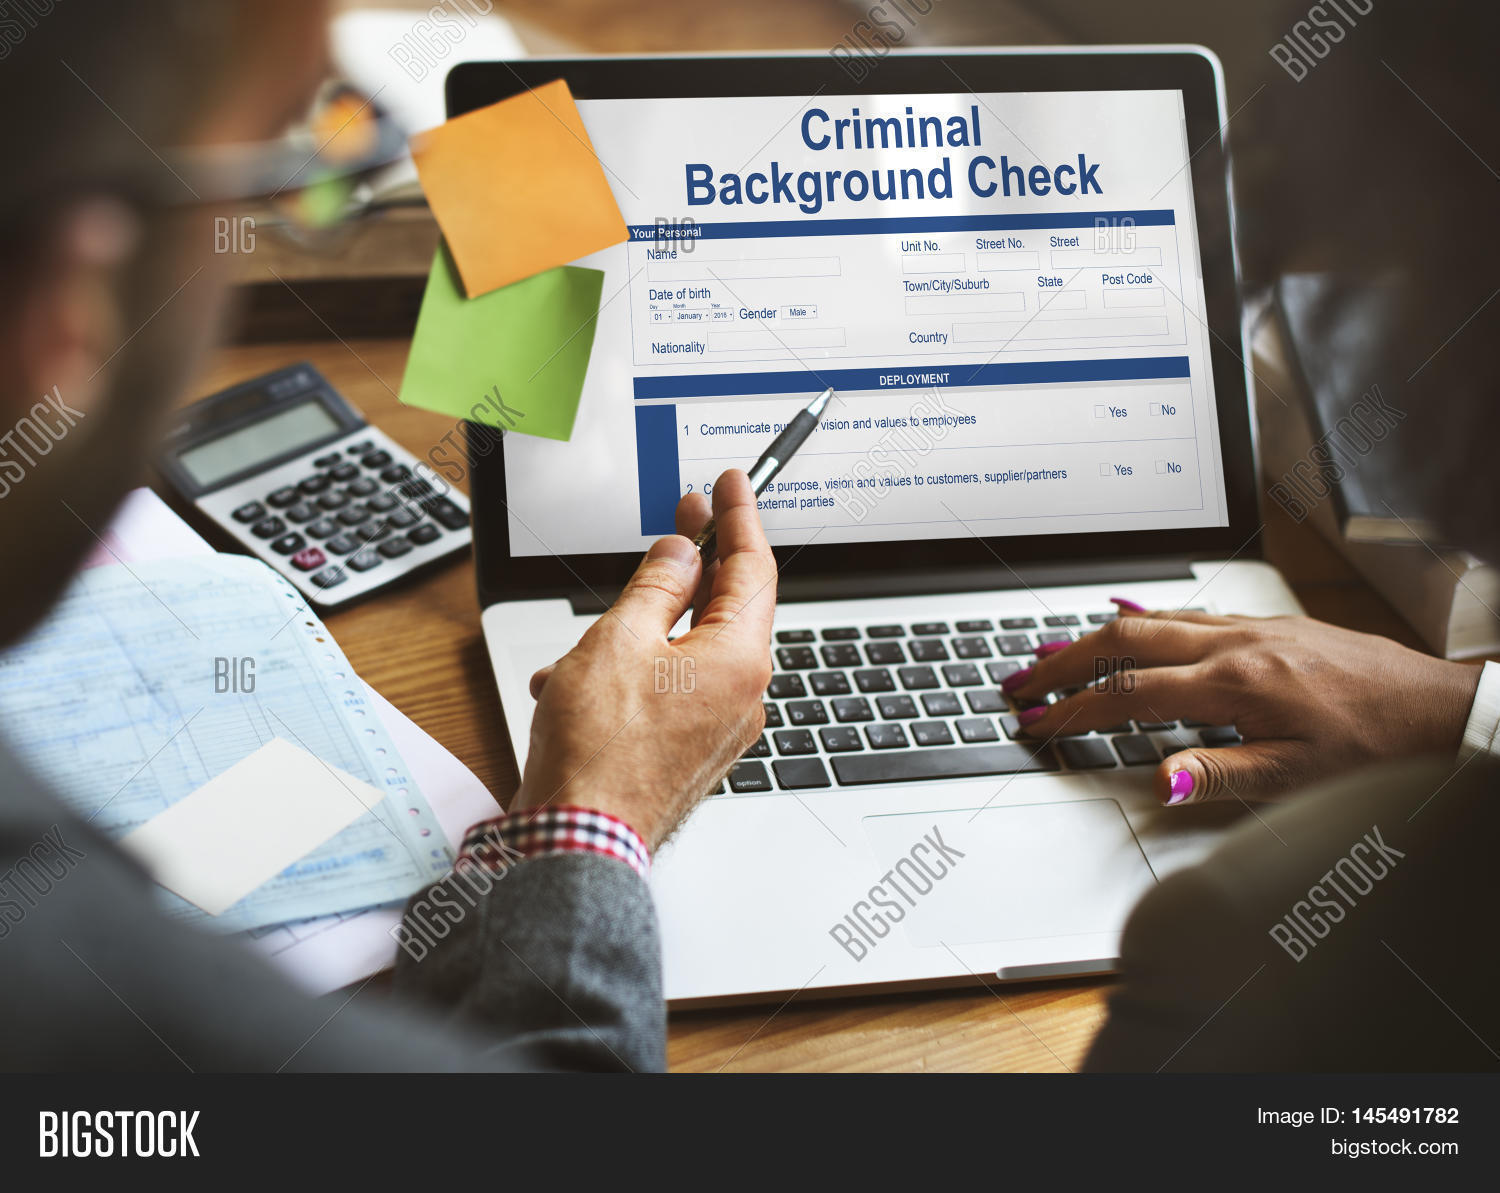 Background checks frequently asked questions